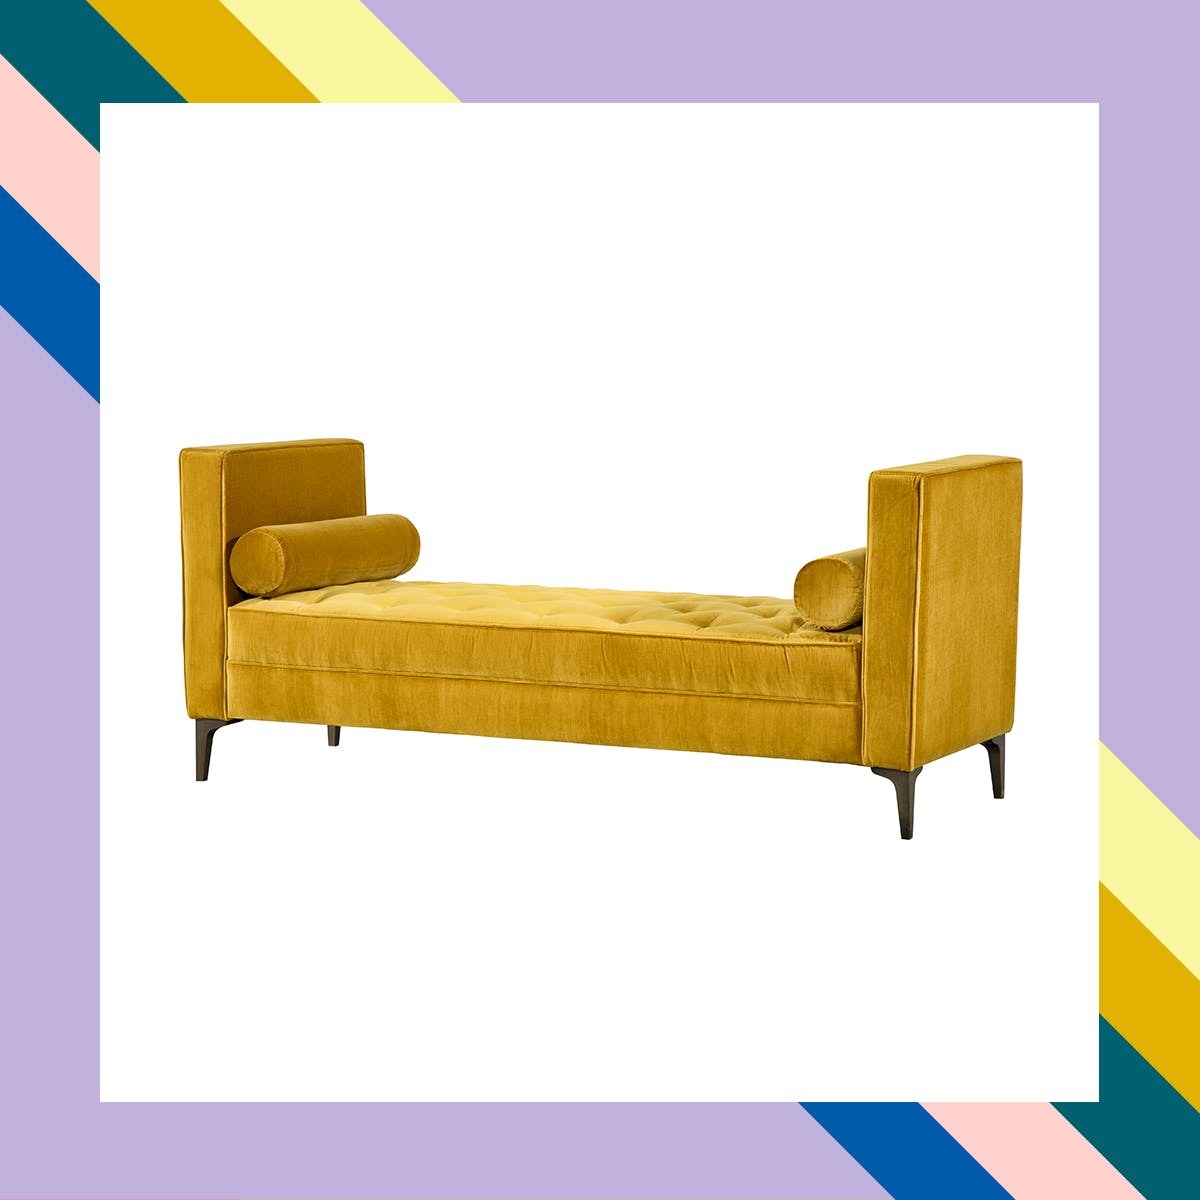 Most Recent Nate Berkus Just Launched A Home Collection With Hubby Jeremiah Pertaining To Matteo Arm Sofa Chairs By Nate Berkus And Jeremiah Brent (View 11 of 20)